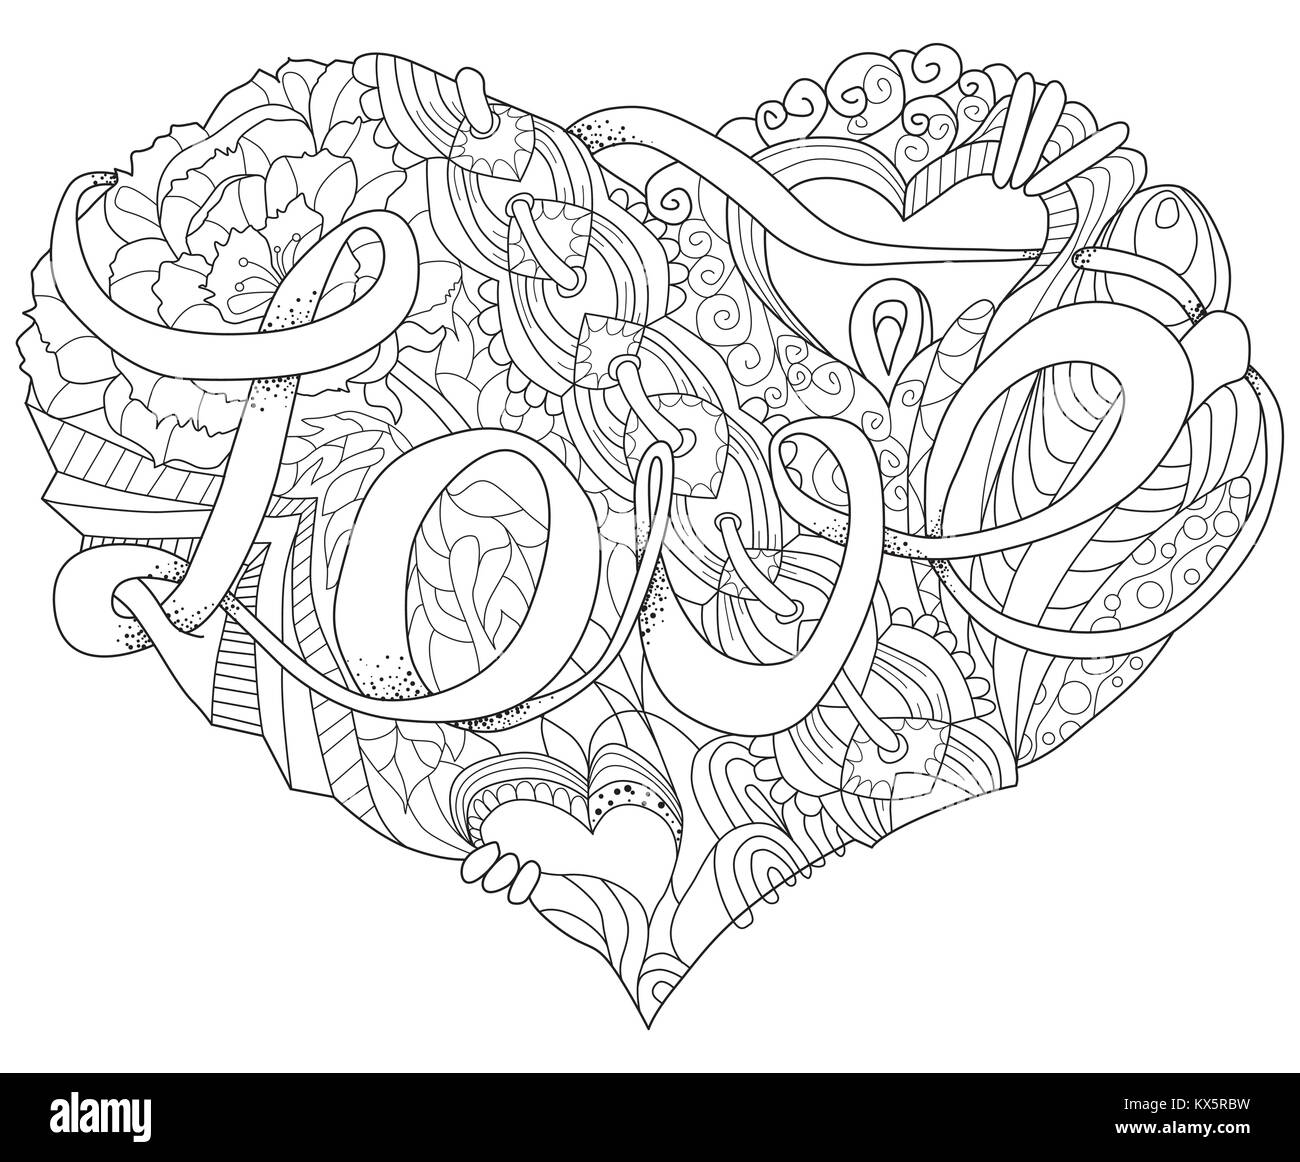 Livre De Coloriage Adultes Vecteur De Textures La Conception De L Art Peint A La Main Anti Stress Adultes Page A Colorier Dessine A La Main En Noir Et Blanc Illustration De Cœur Pour